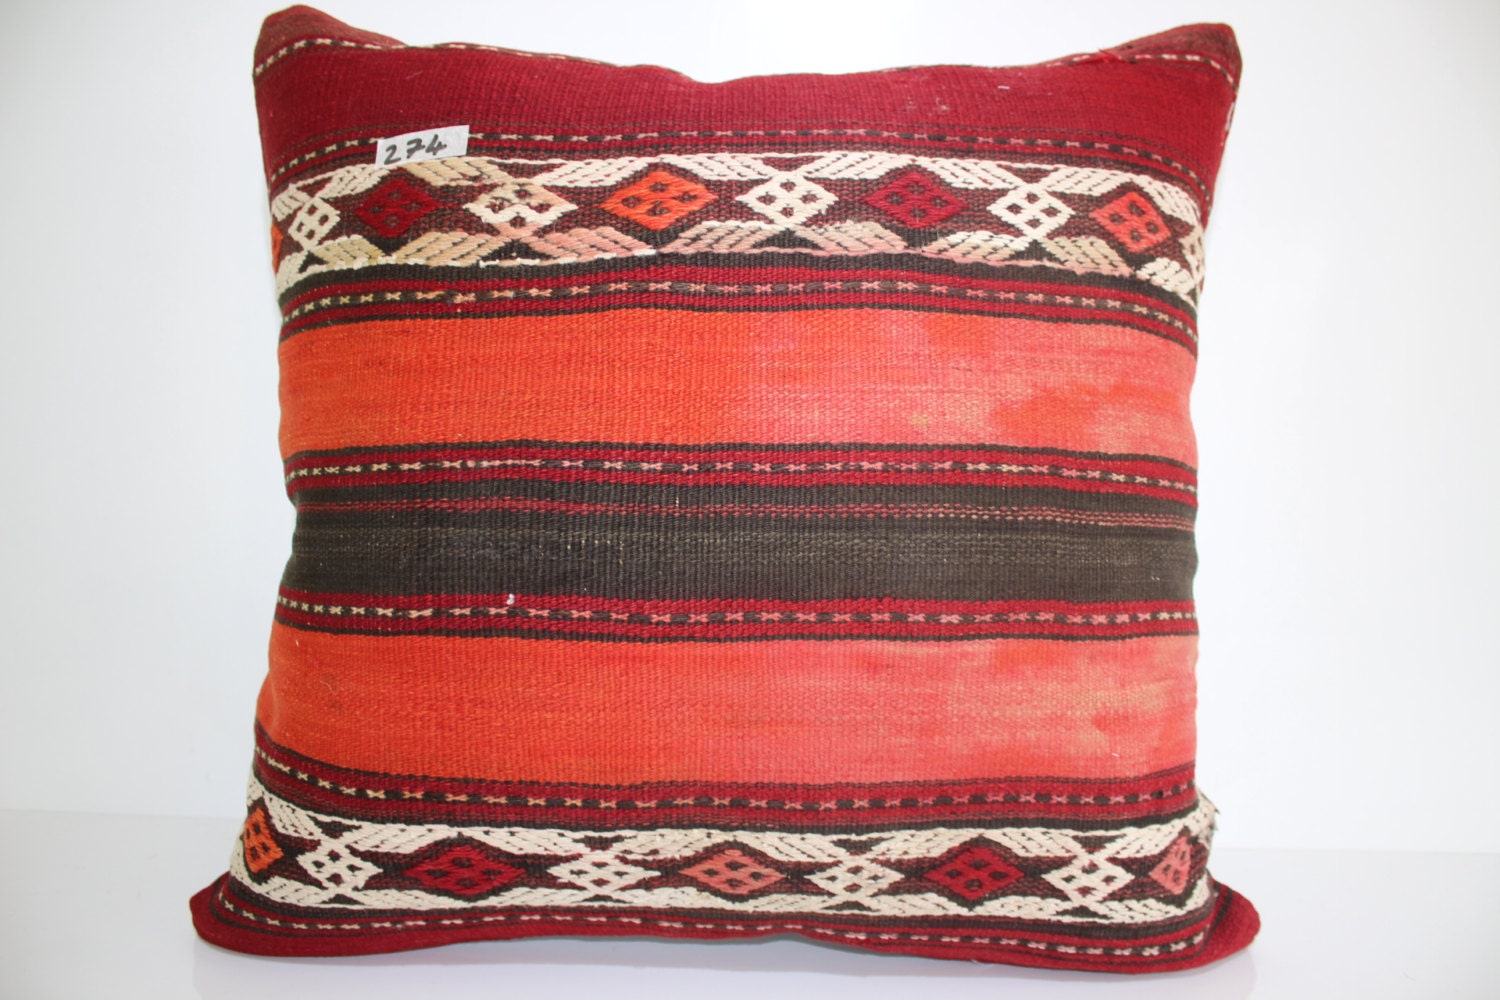 Large Floor Pillow Cases : Kilim Pillow 24x24 Large Size Floor Cushion Cover 24x24